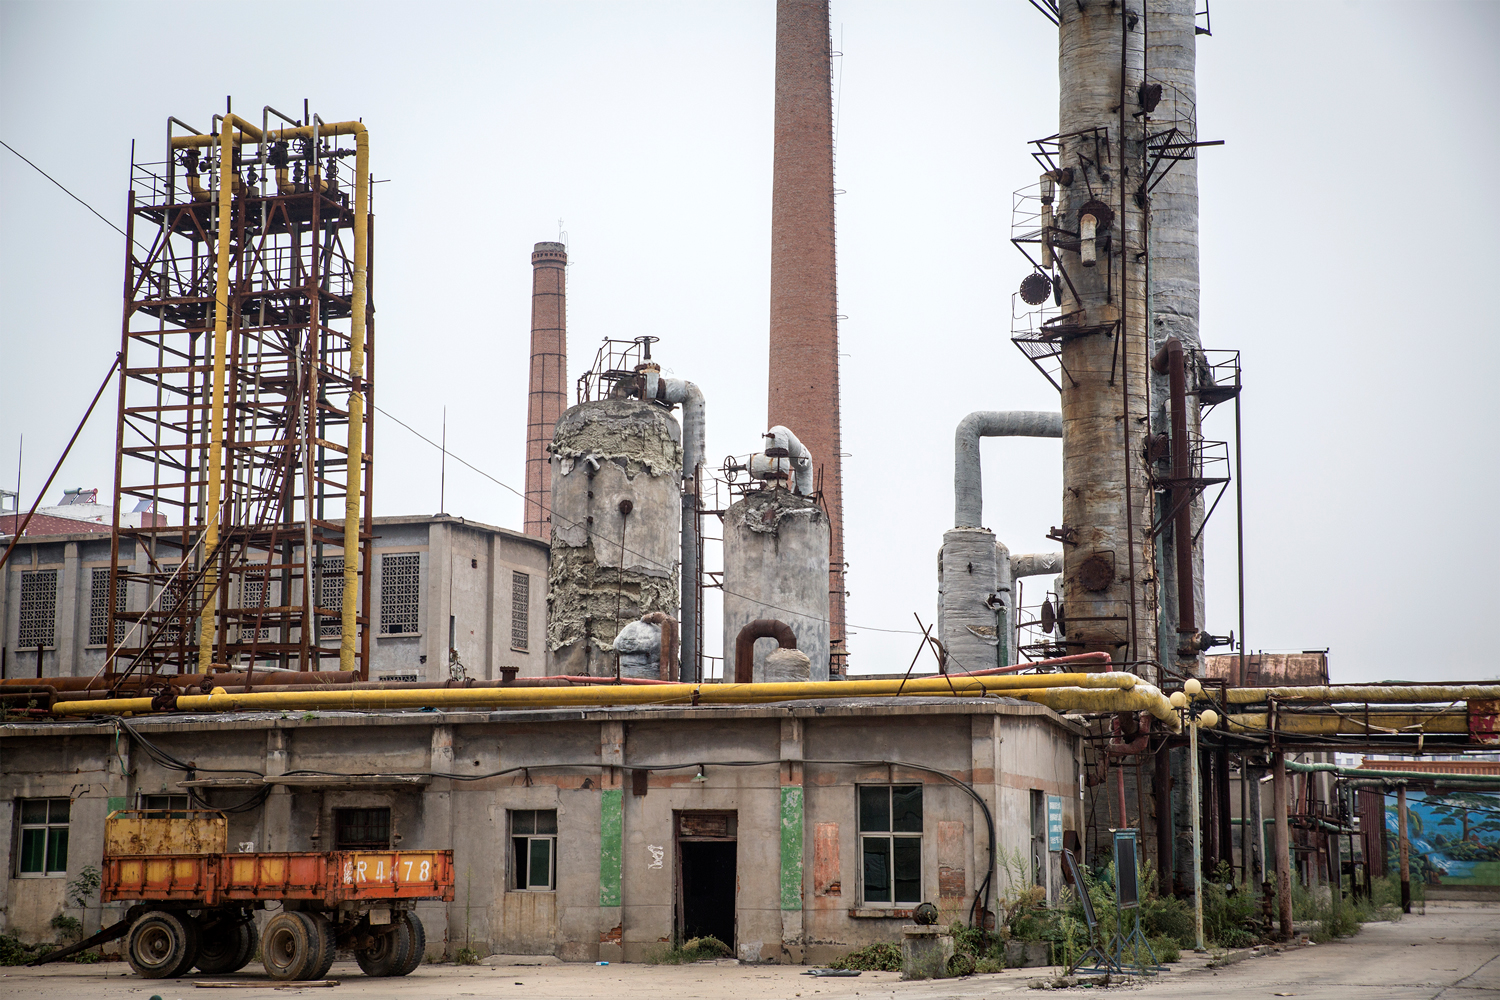 In the eighth century BCE, Xichuan was the seat of a powerful regional kingdom, the Chu, but today it is one of China's poorest areas, and there is nothing grand about its dilapidated downtown and abandoned factories.